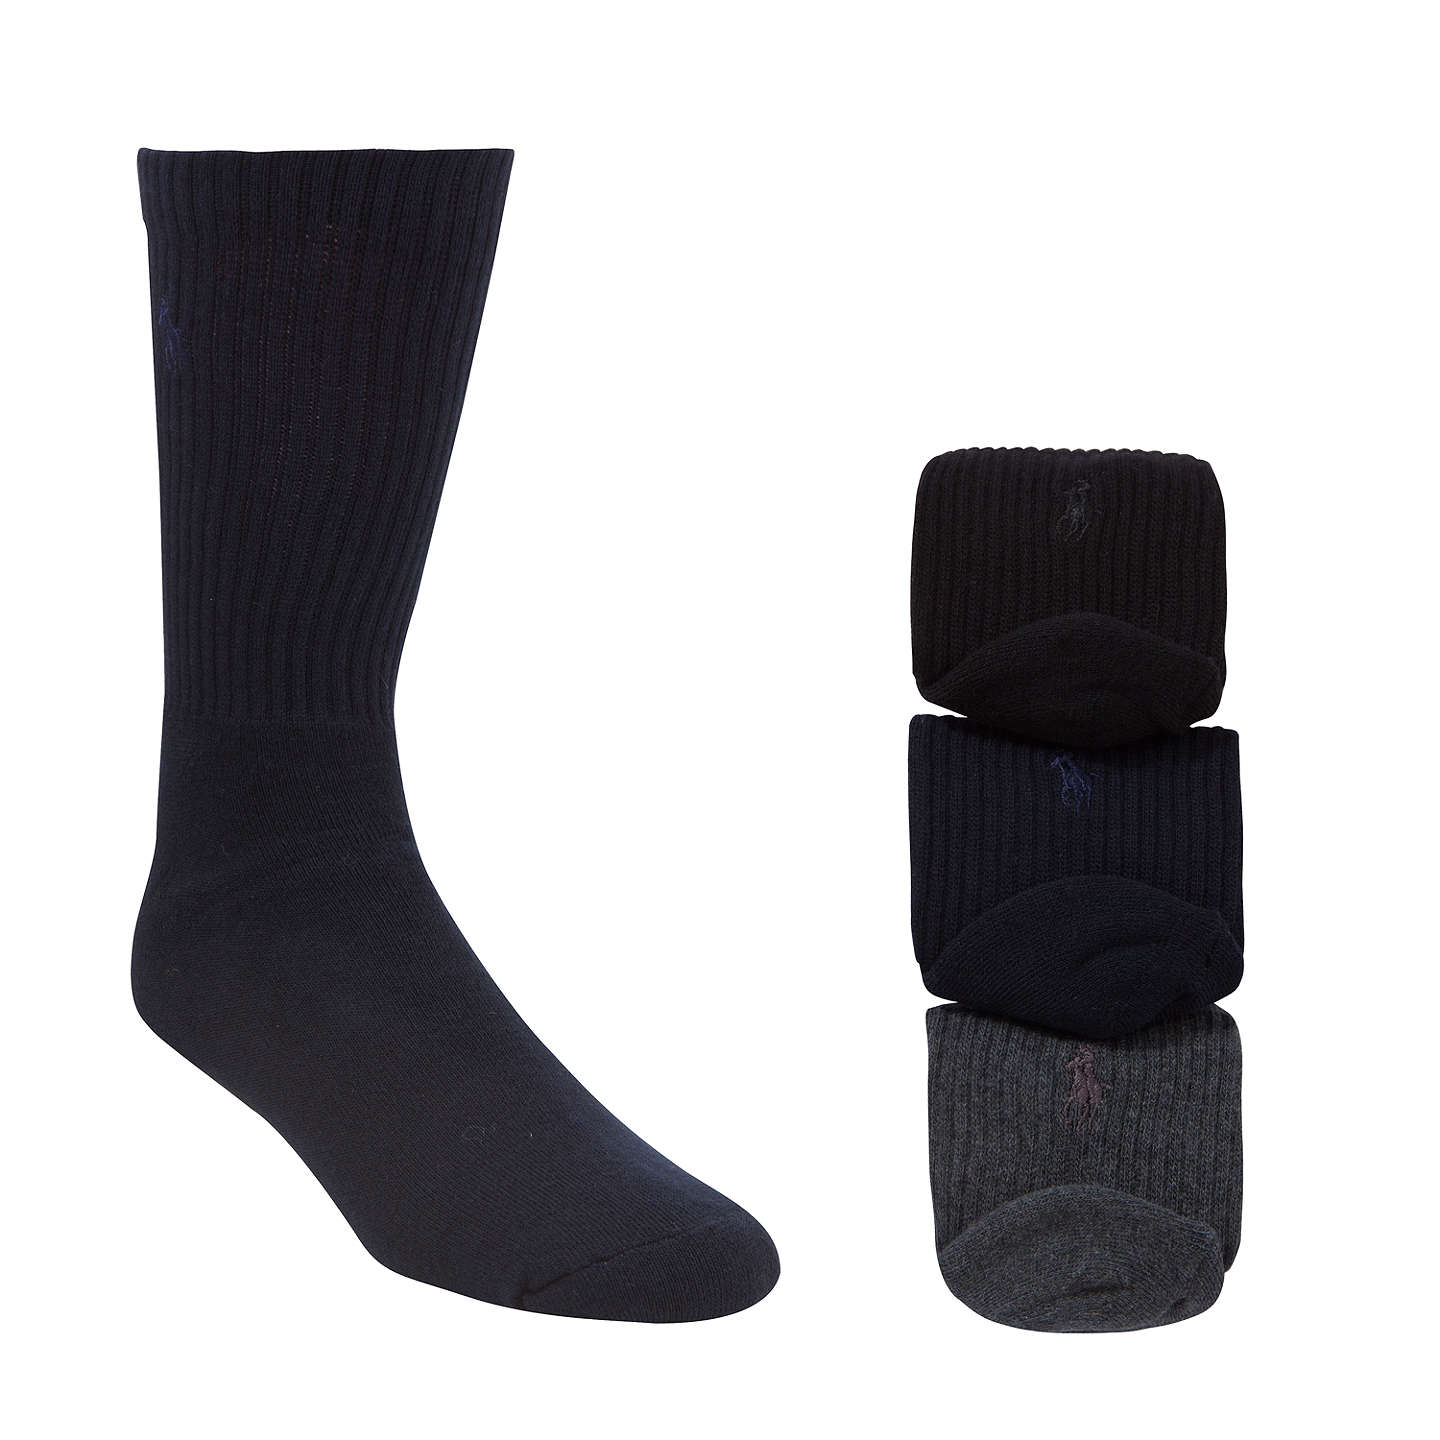 BuyPolo Ralph Lauren Cotton Rich Socks, Pack of 3, One Size, Black/Charcoal/Navy Online at johnlewis.com